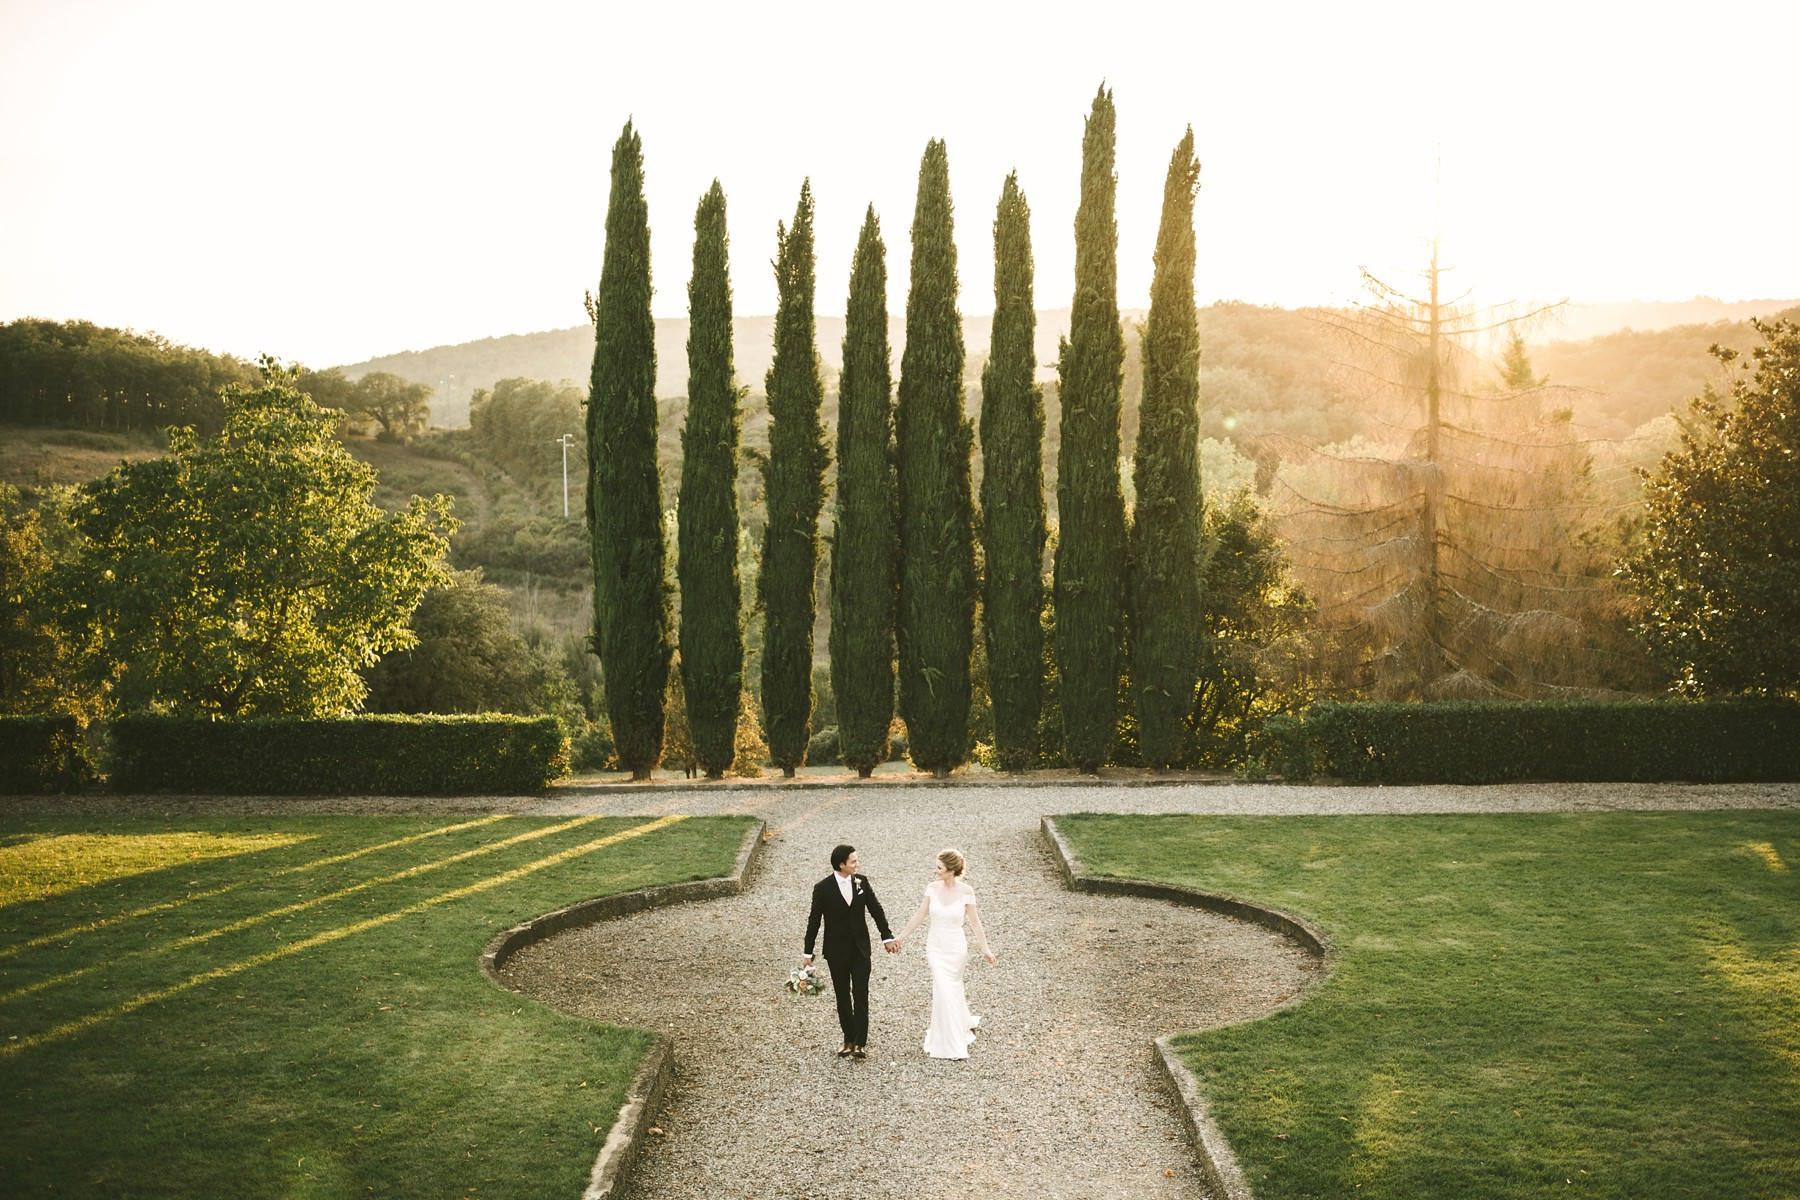 Unforgettable and dreamy elopement wedding portrait in Tuscany countryside Villa La Selva resort